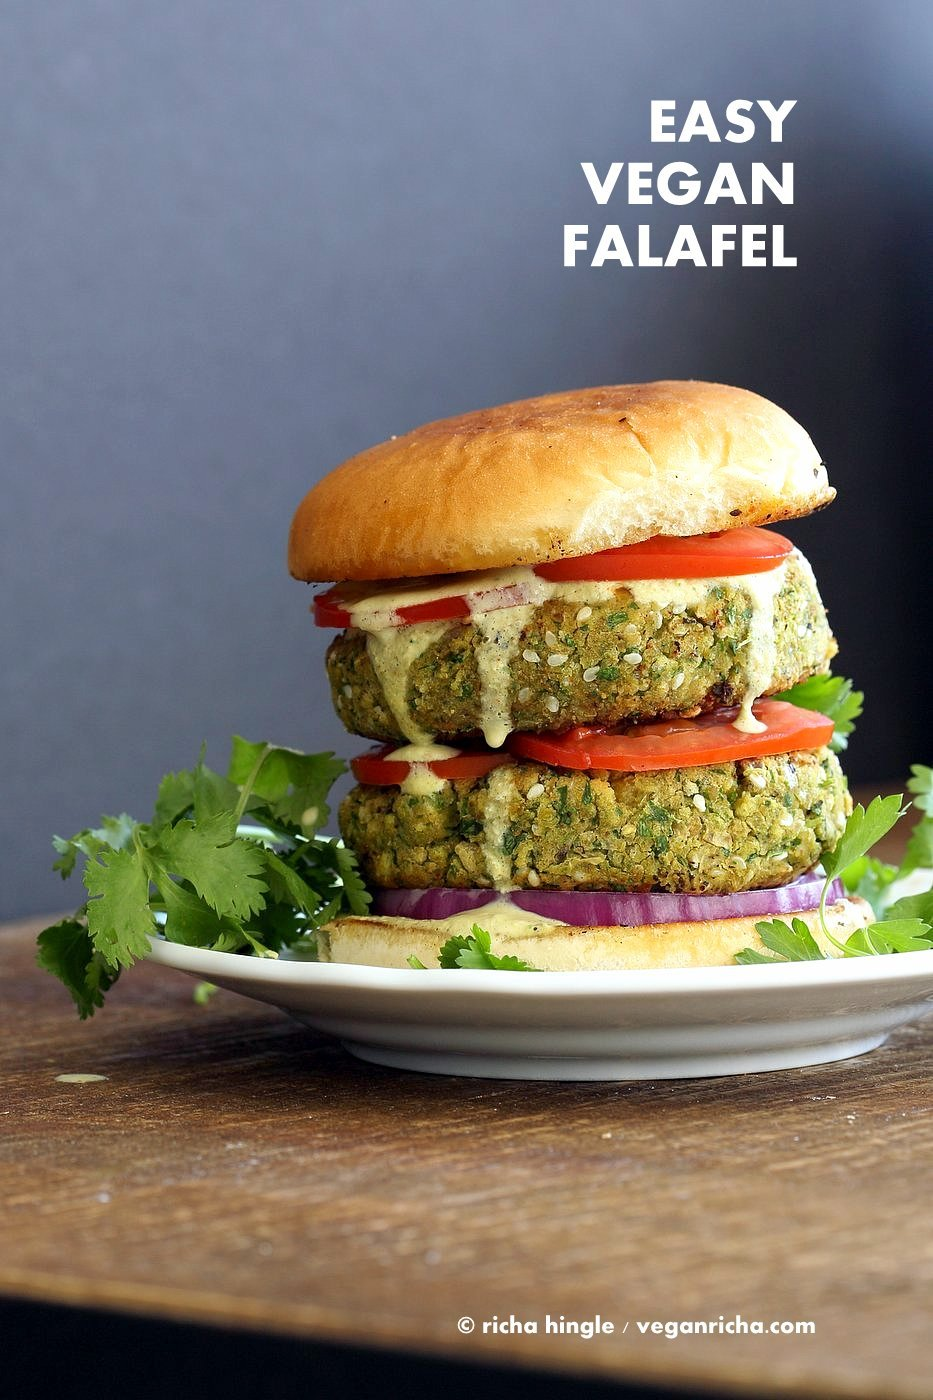 Easy Vegan Falafel Burger Recipe Vegan Richa